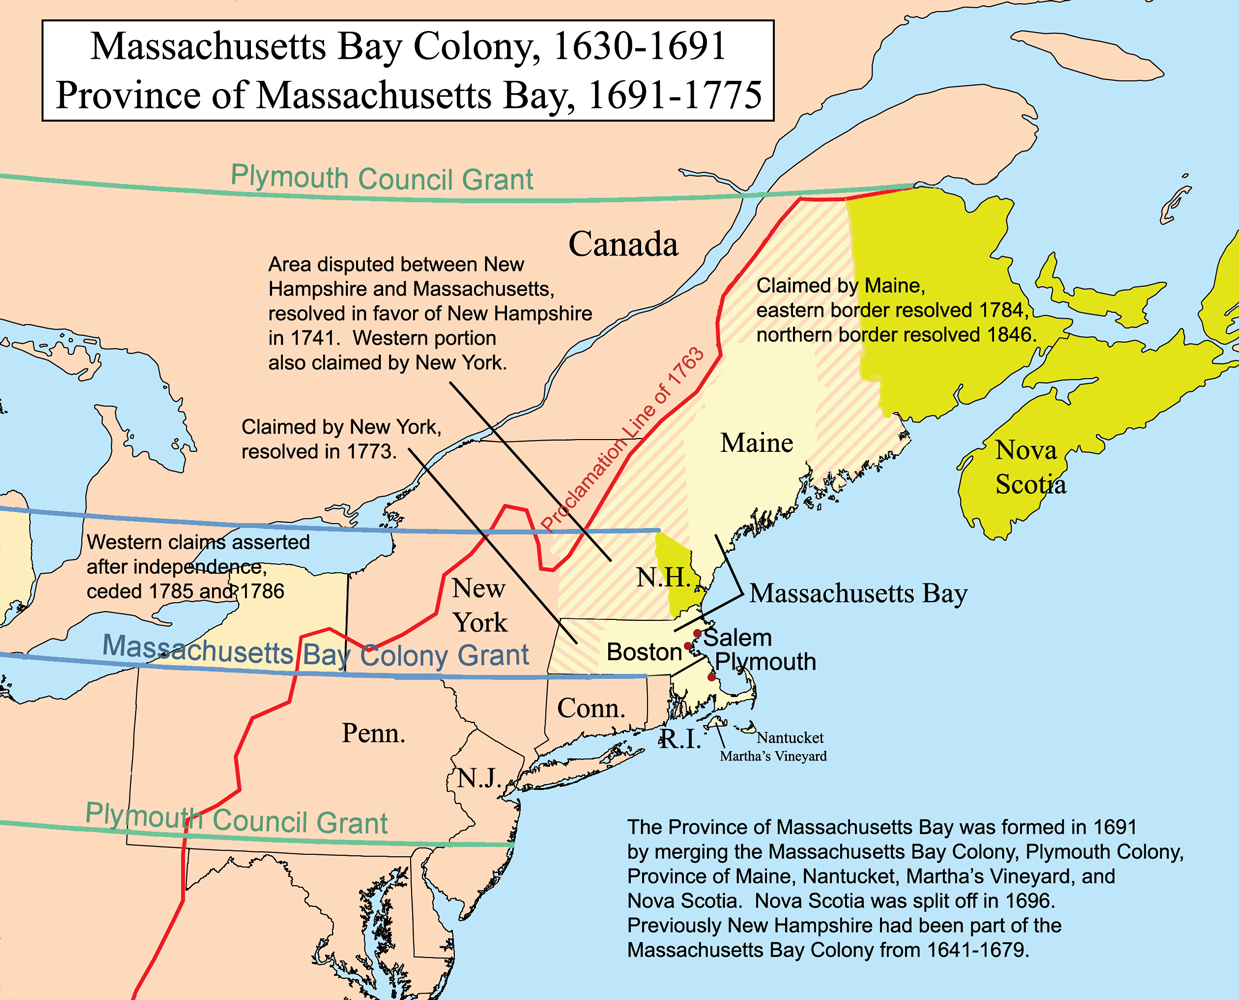 differences between chesapeake bay and new england colonies Chesapeake and new england colonies' developmental differences by the 1700s the new england and chesapeake colonies had vast differences in their societies.